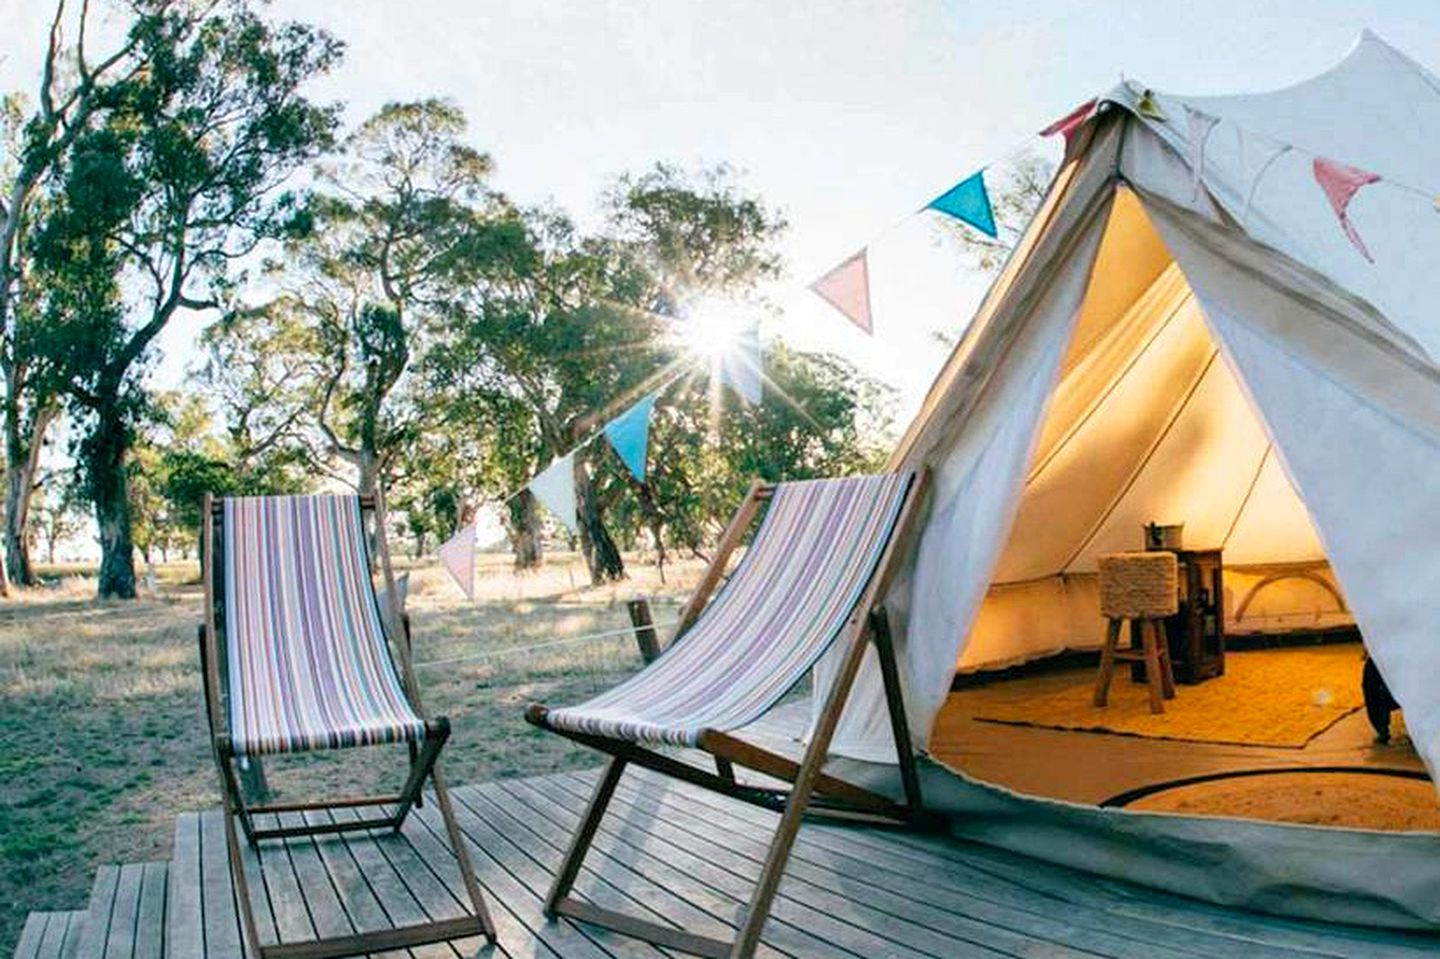 The Coonawarra winery accommodation ideal for guests going glamping in South Australia or looking for relaxing holidays in South Australia